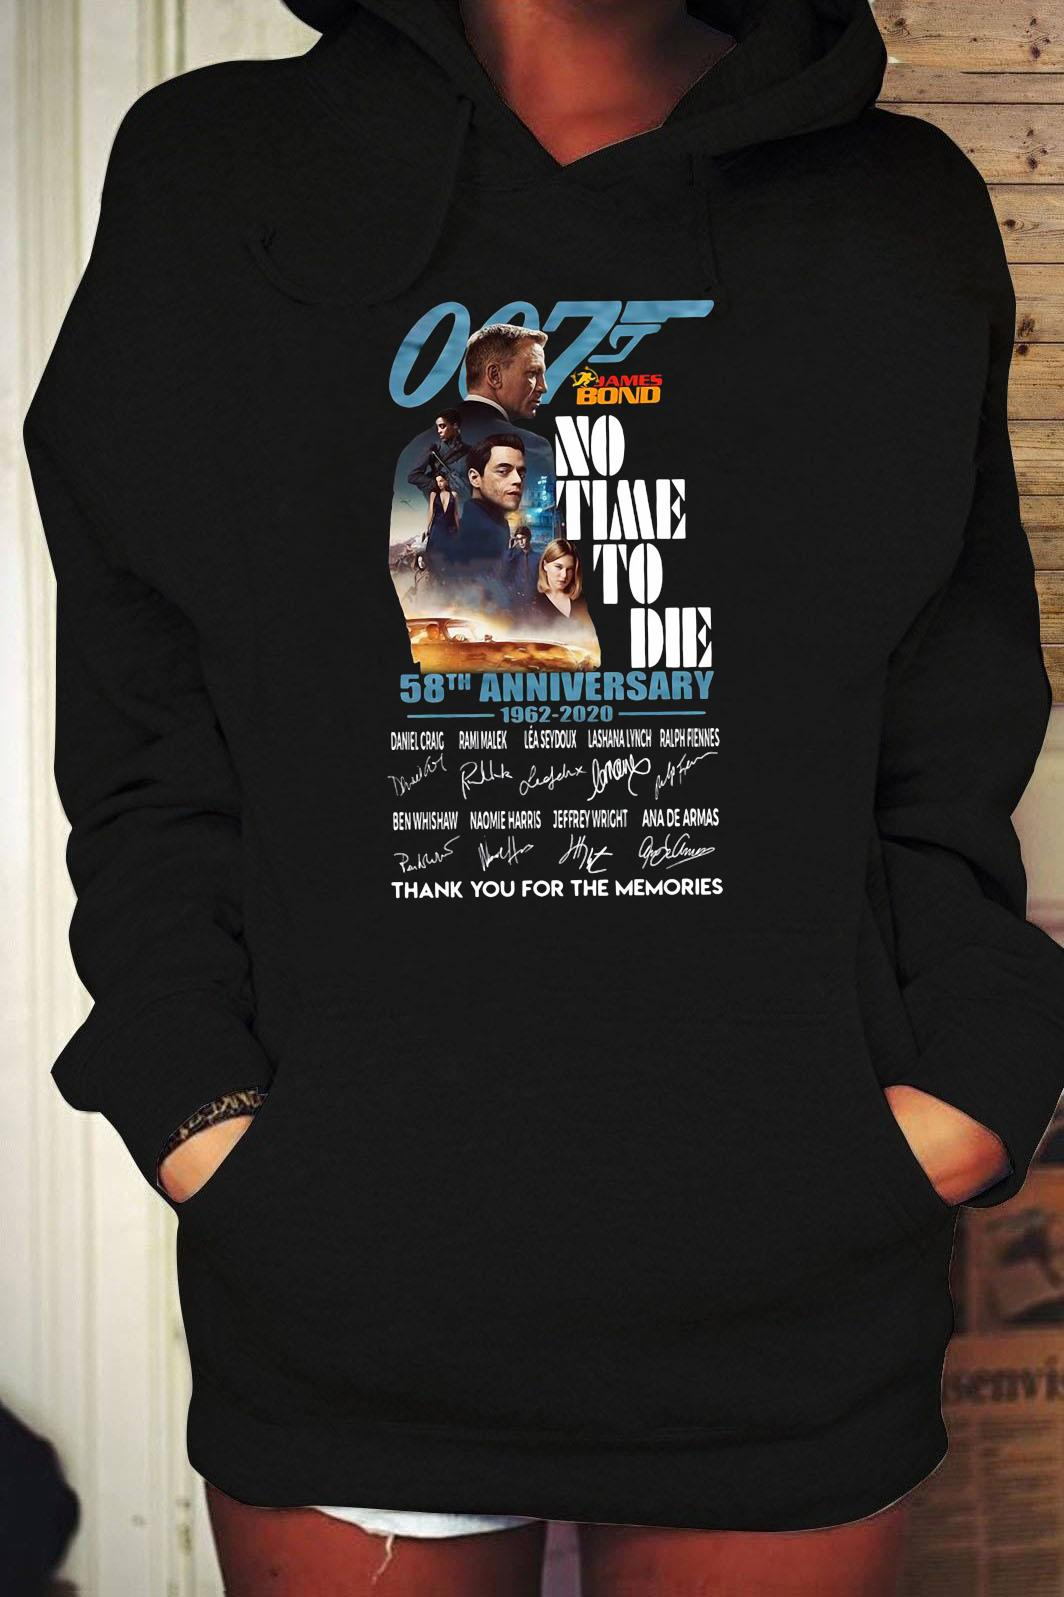 007 James Bond No Time To Die 58th Anniversary 1962 2020 Thank You For The Memories Signatures Shirt Hoodie